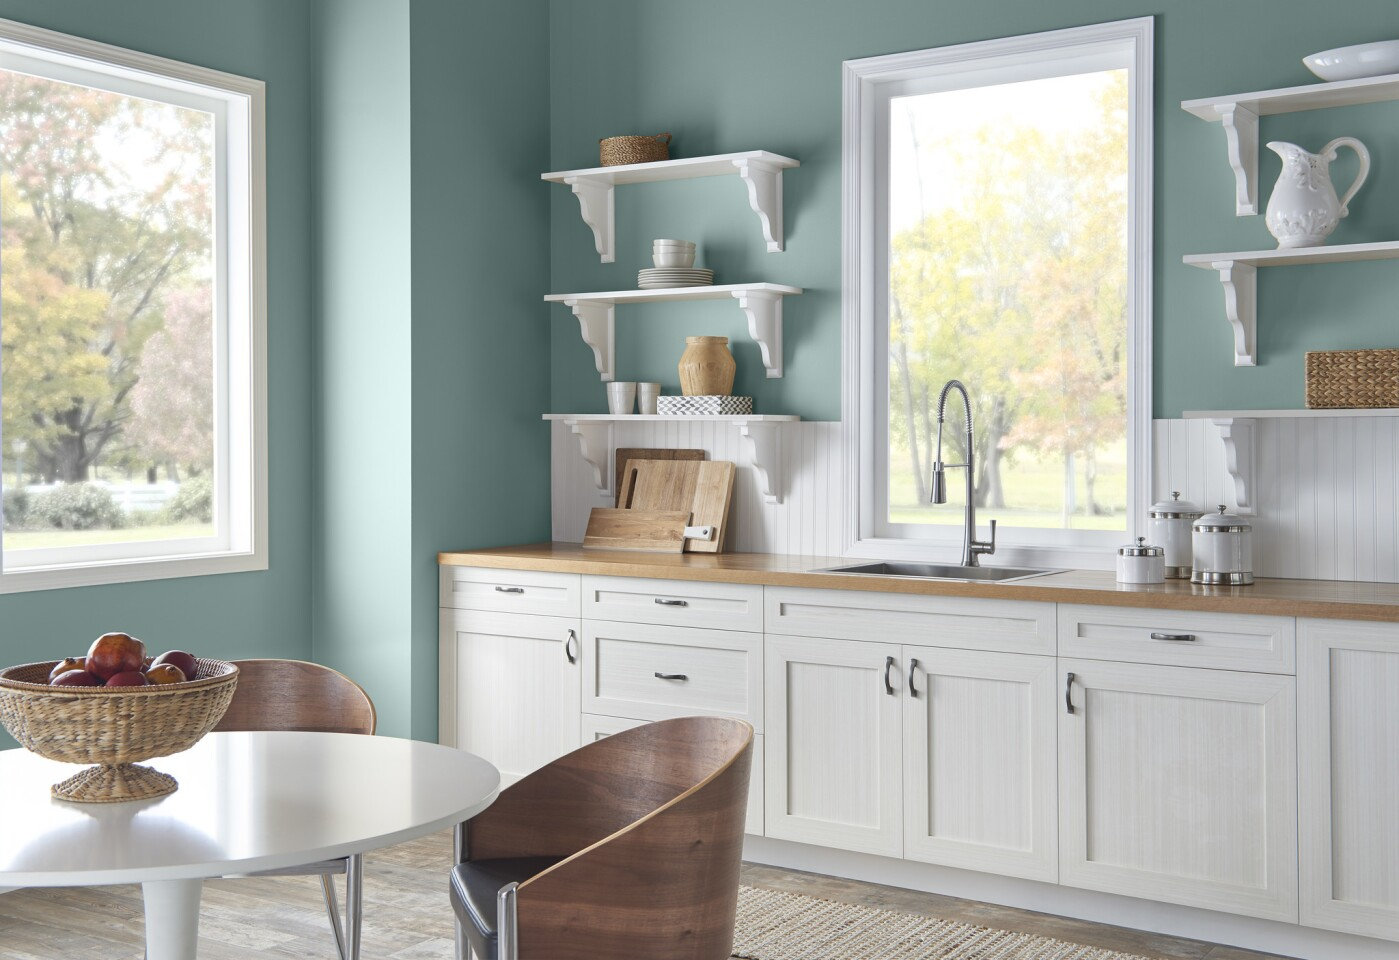 Kitchen walls painted with In the Moment are contrasted with white shelves and molding.